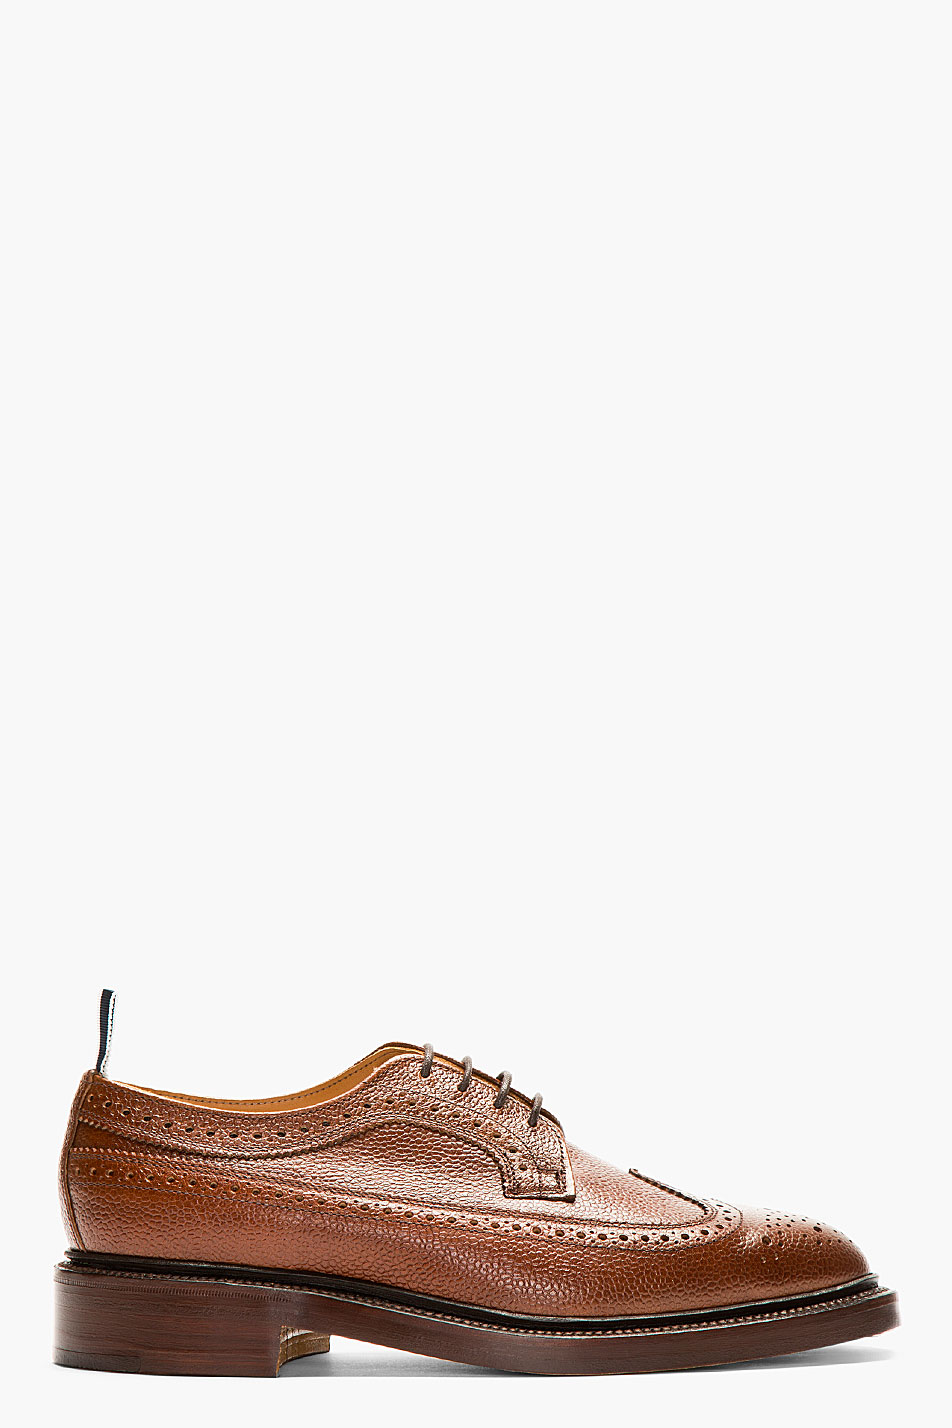 Thom browne brown leather longwing brogues